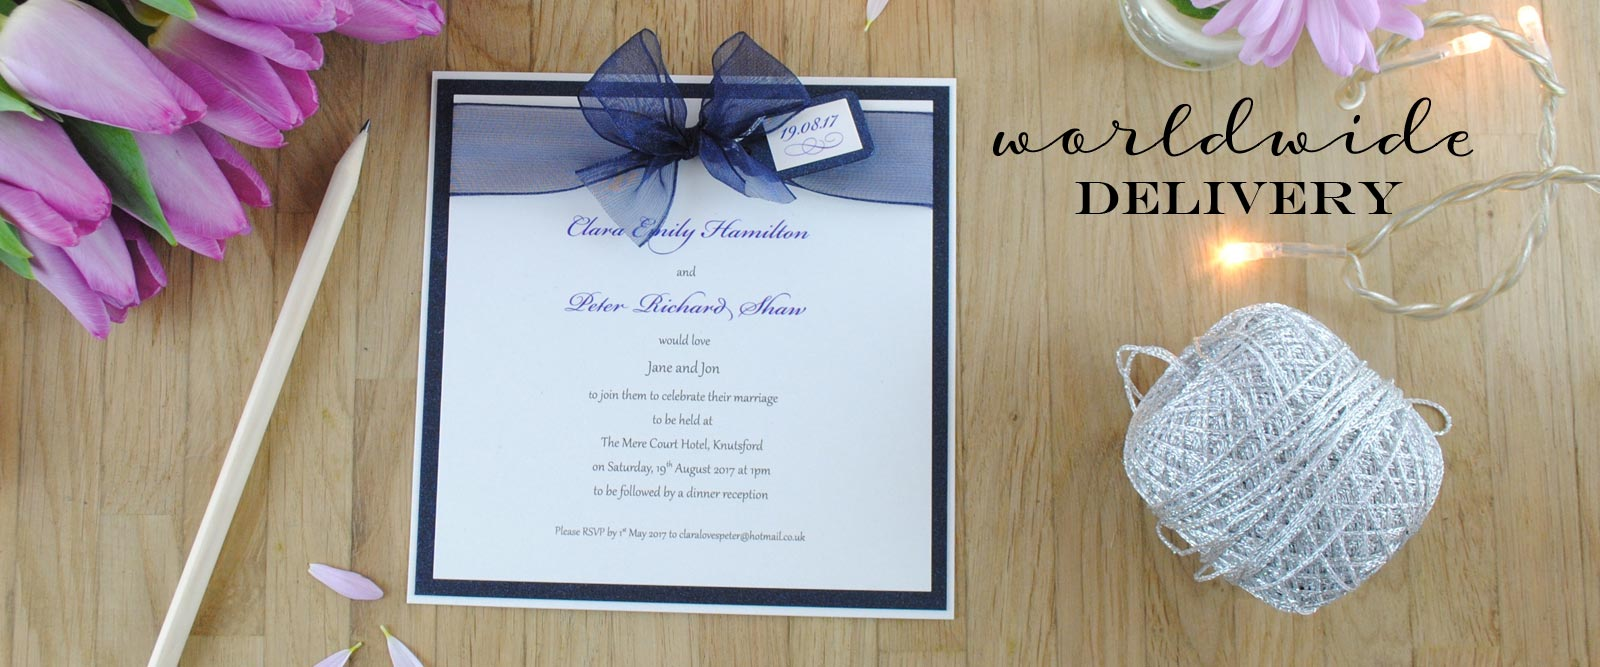 Luxury Handmade Wedding Invitations & Wedding Stationery UK ...